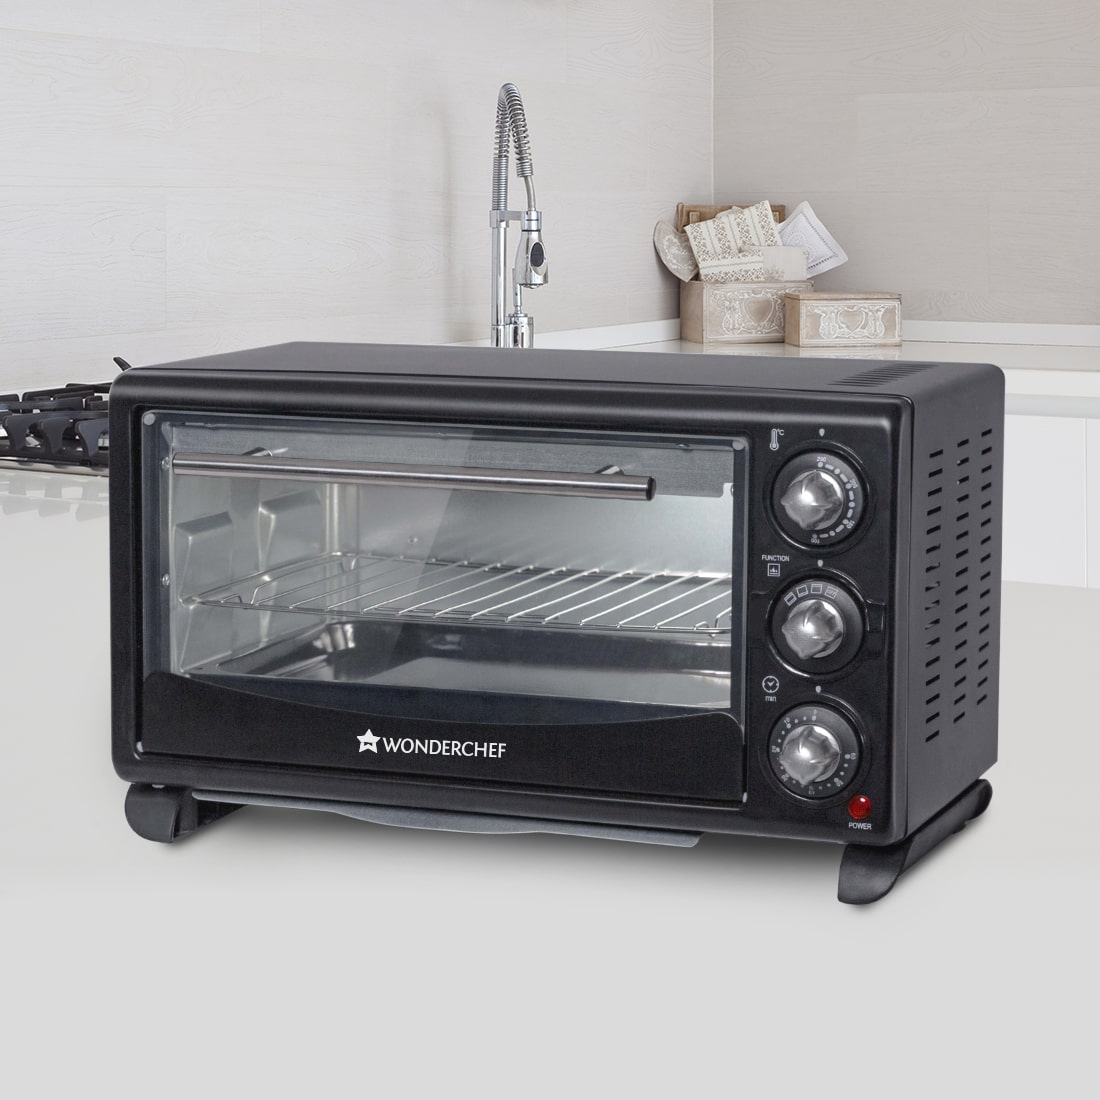 Oven Toaster Griller (OTG) 21 Litres, Auto Power-Off with Bell, Heat Resistant Glass Window, 2 Years Warranty- 1380W